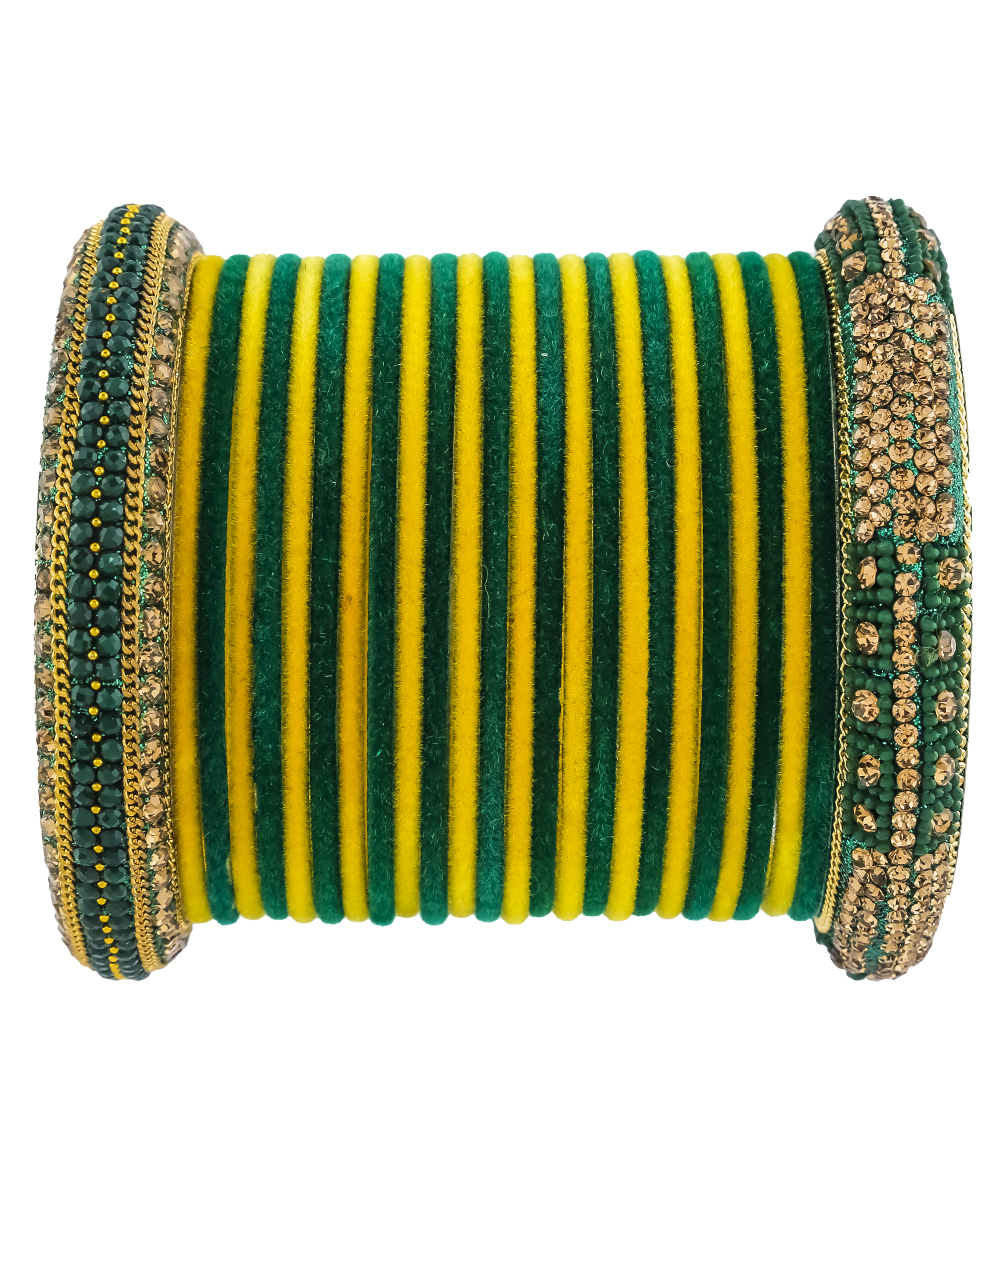 Fancy Green And Yellow Colour Matching Bangle Set For Women.